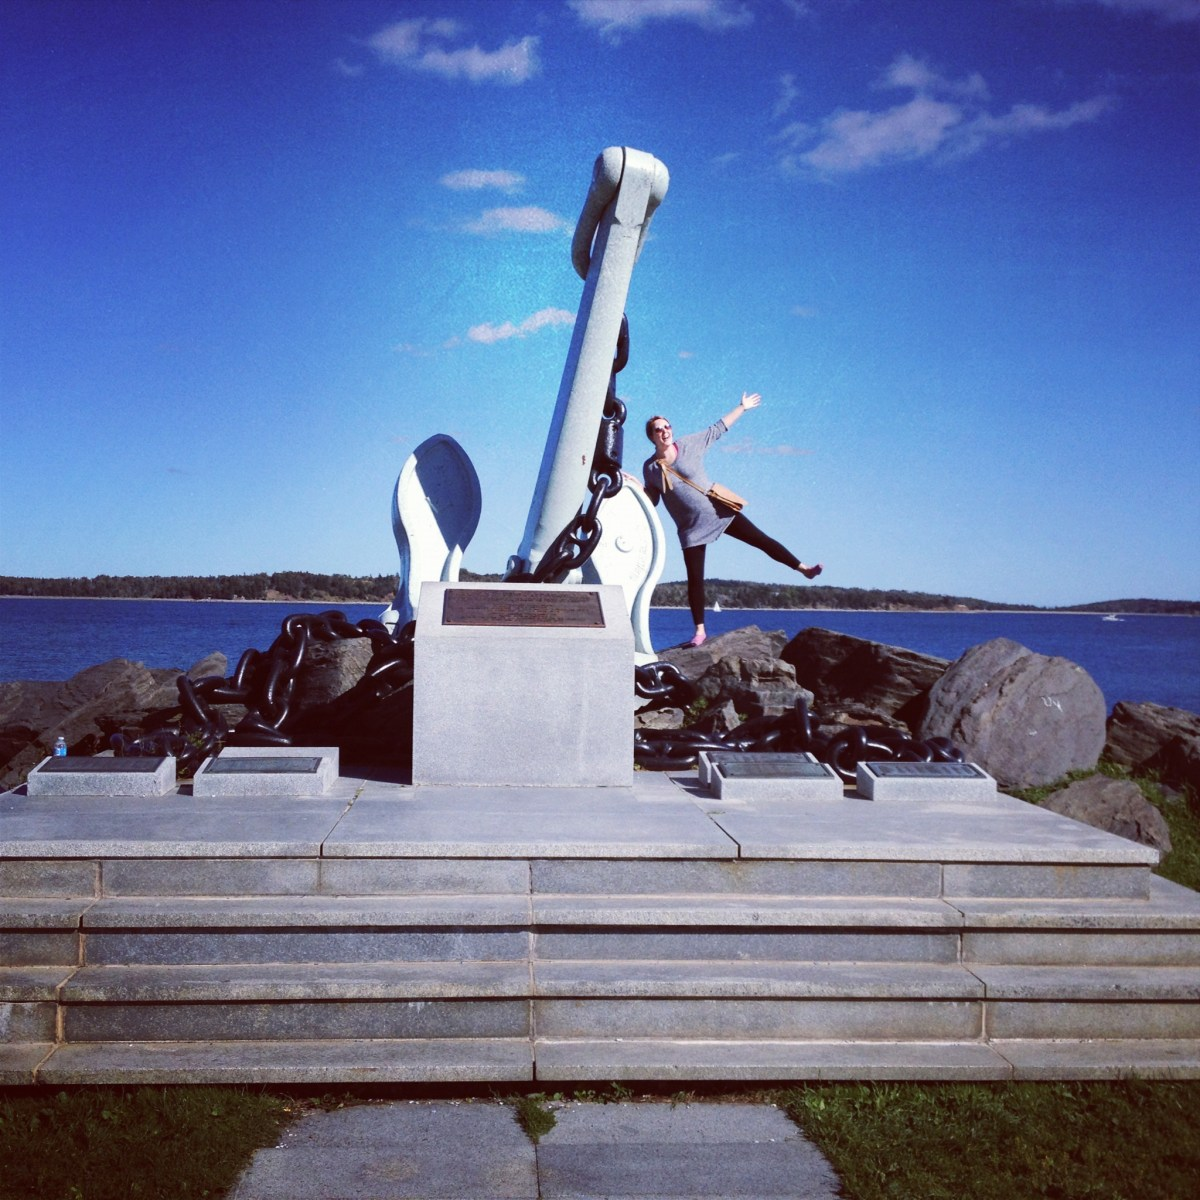 Exploring Point Pleasant Park during my first week in Halifax!